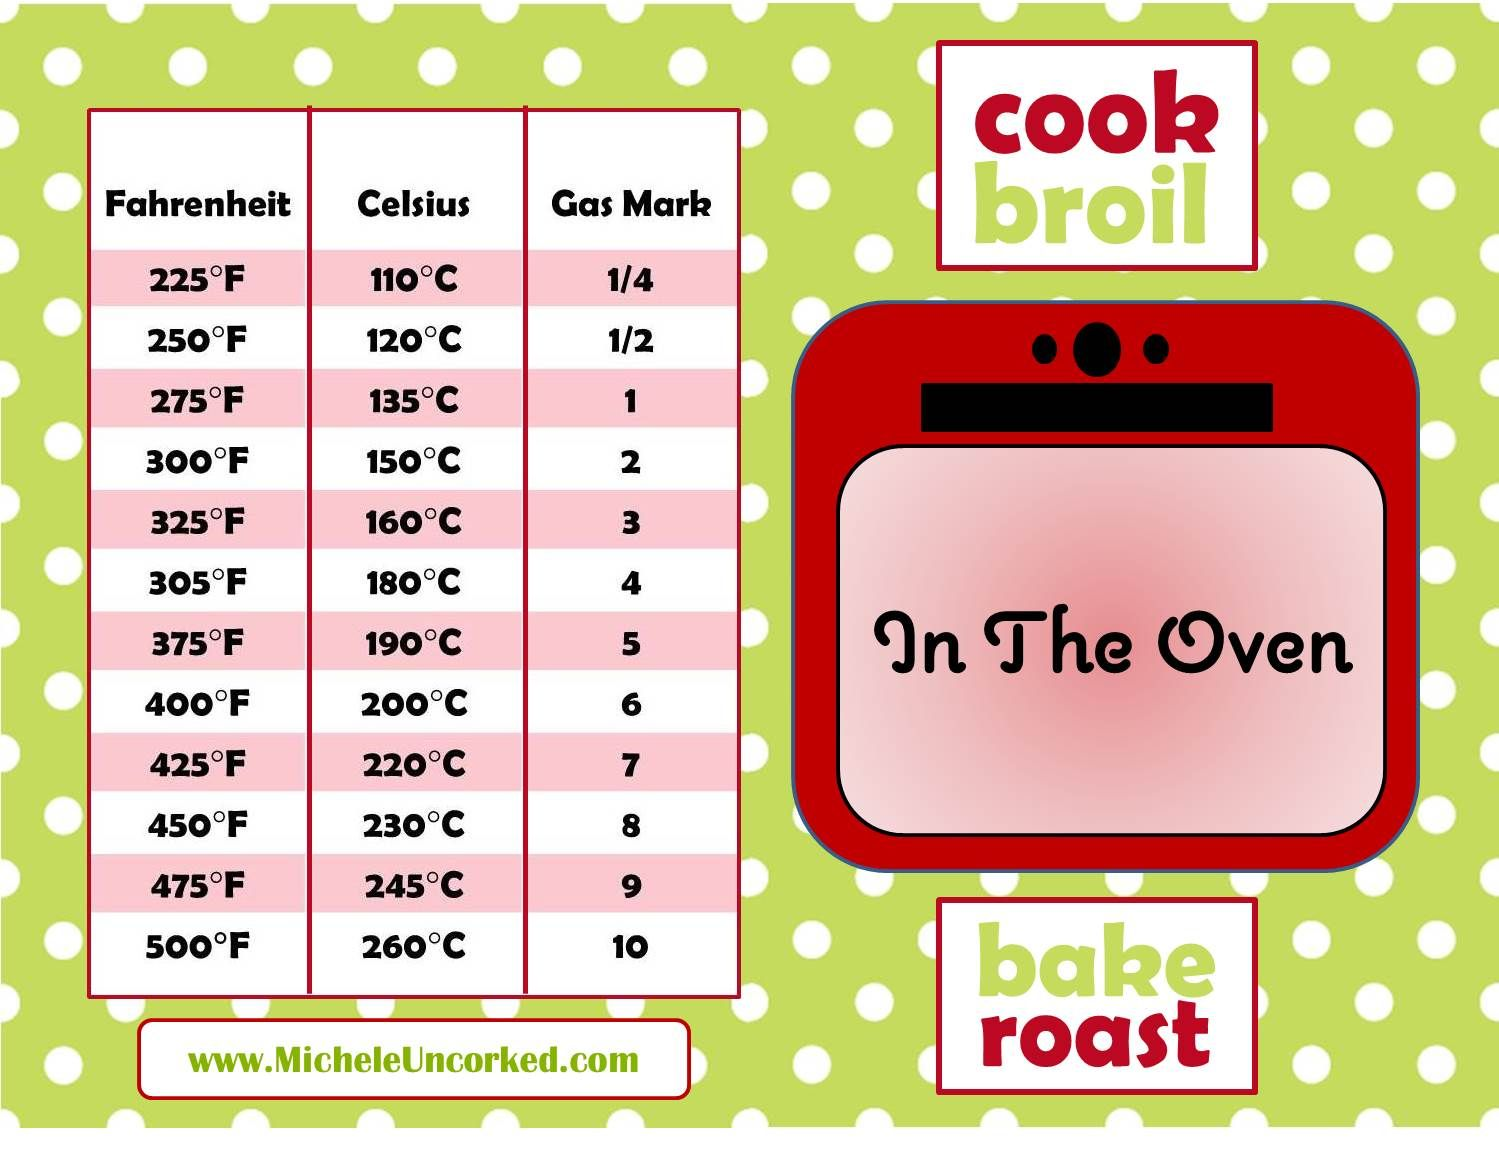 Infographic about temperature equivalents converting temperatures infographic about temperature equivalents converting temperatures from fahrenheit to celsius or gas mark making nvjuhfo Images